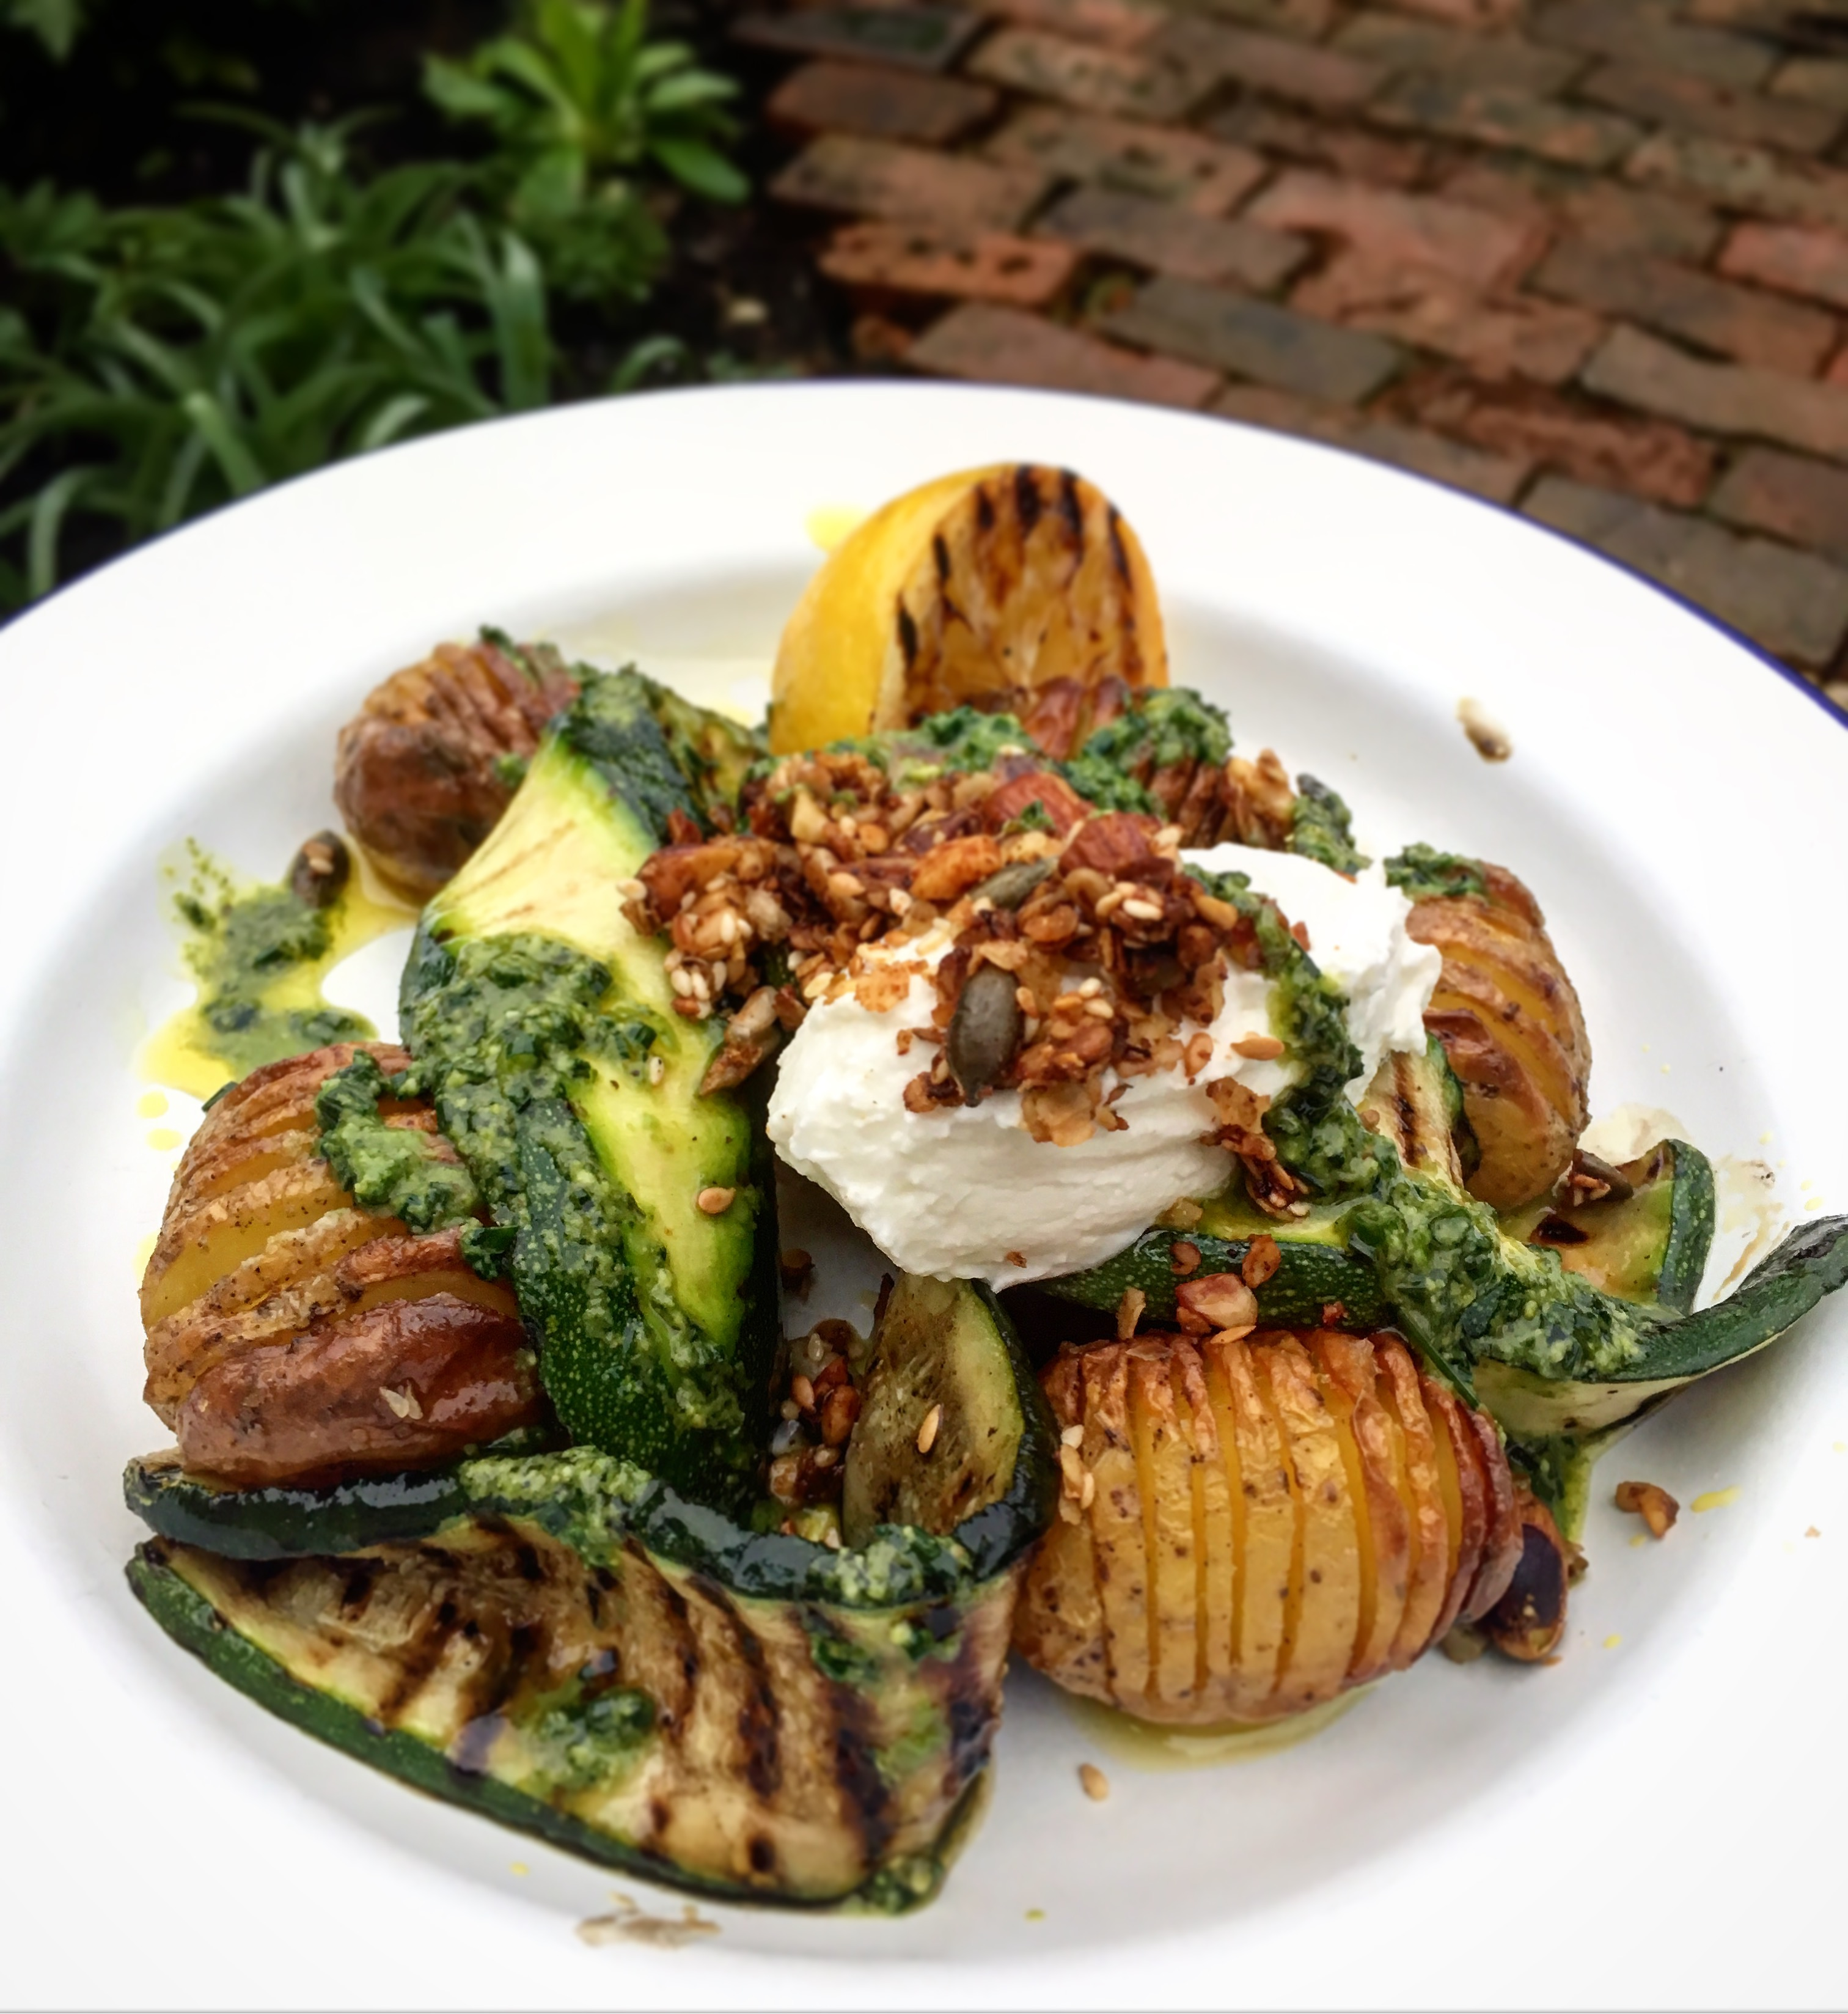 A plate of potatoes and courgettes